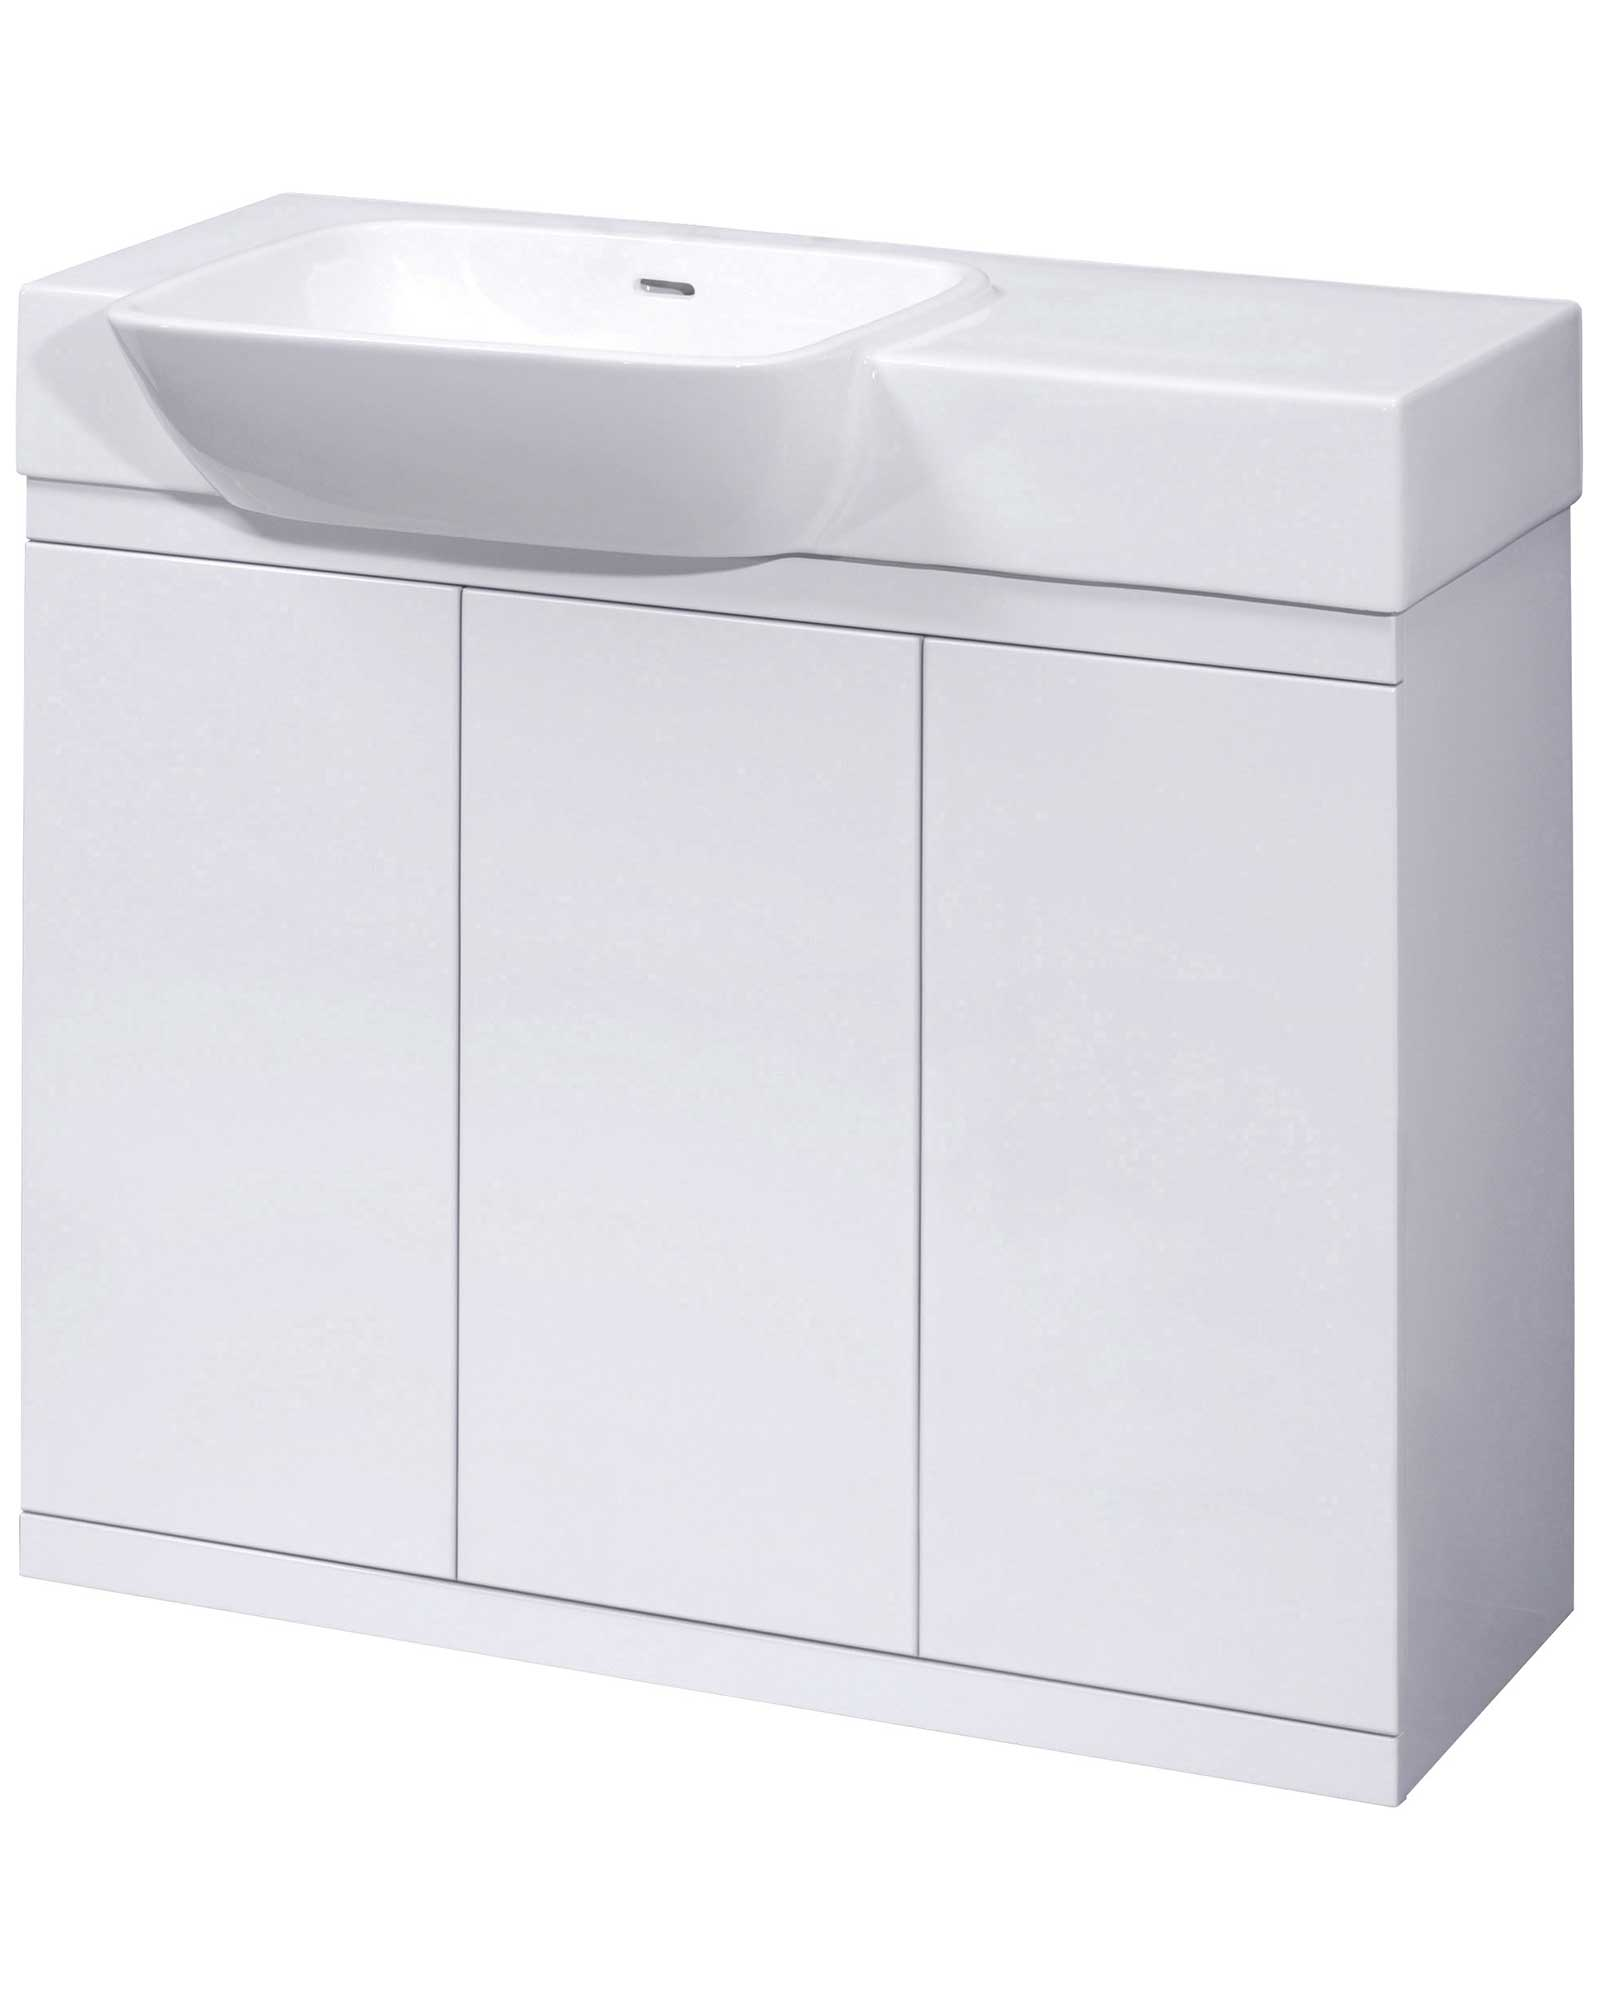 pictures of bathrooms with pedestal sinks white floor standing 3 door cabinet and basin 25672